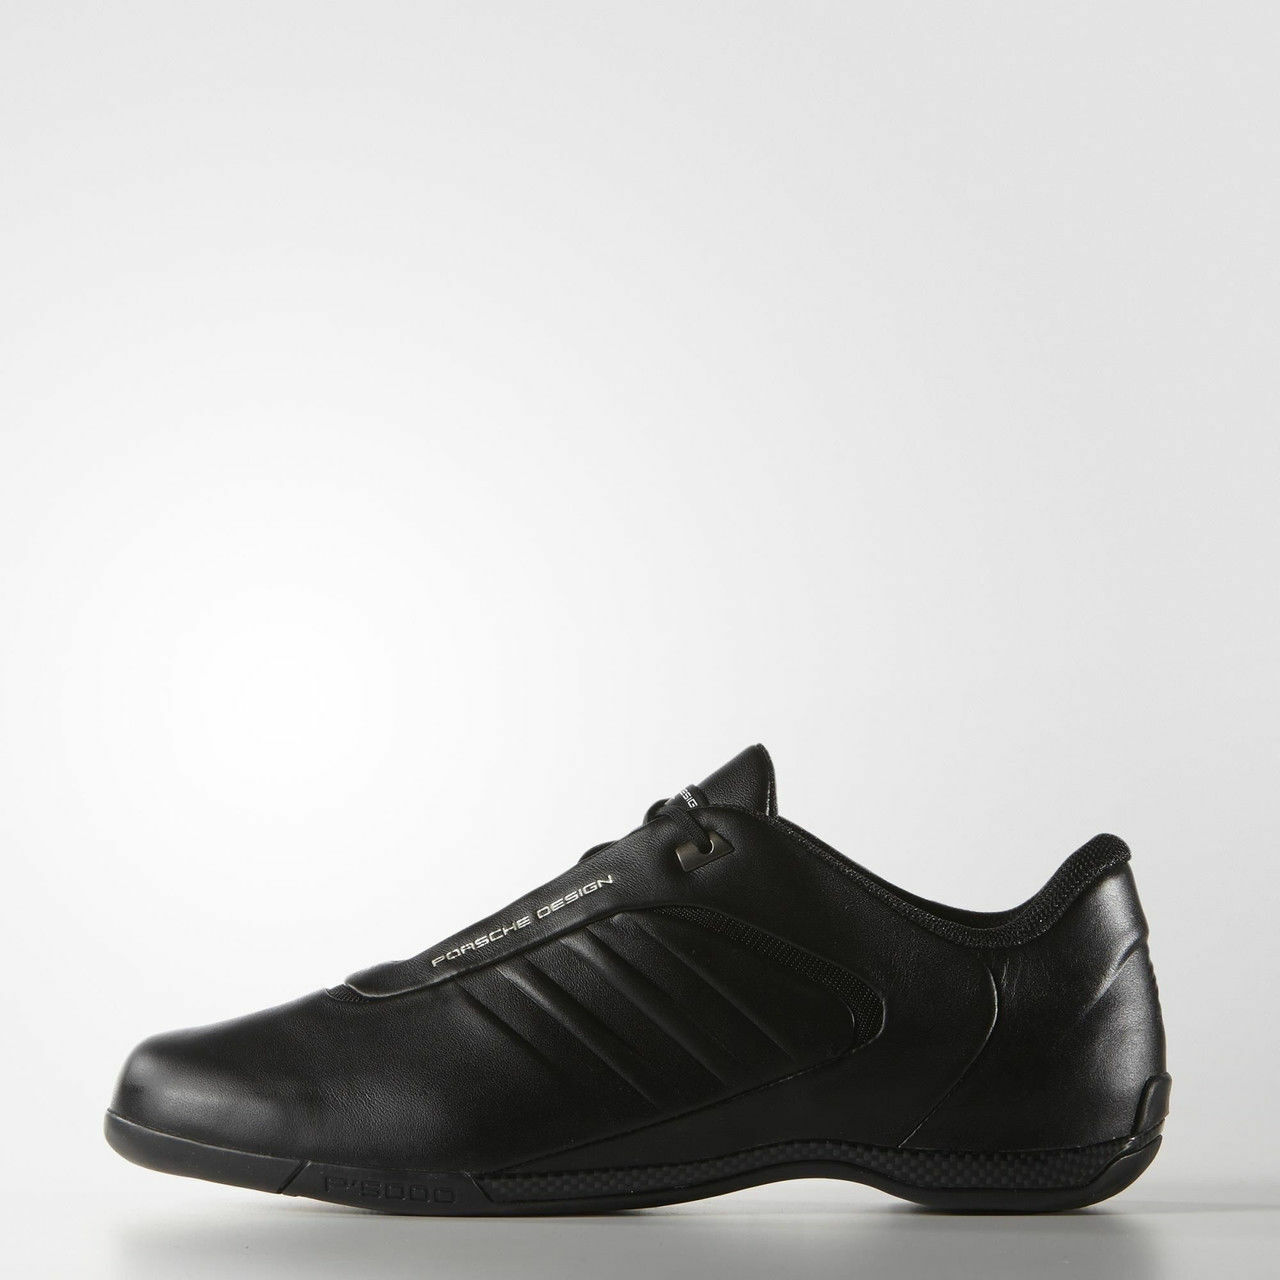 Adidas Porsche Design Drive Athletic III Black Shoes Bounce Mens Leather B34158 Cheap and beautiful fashion